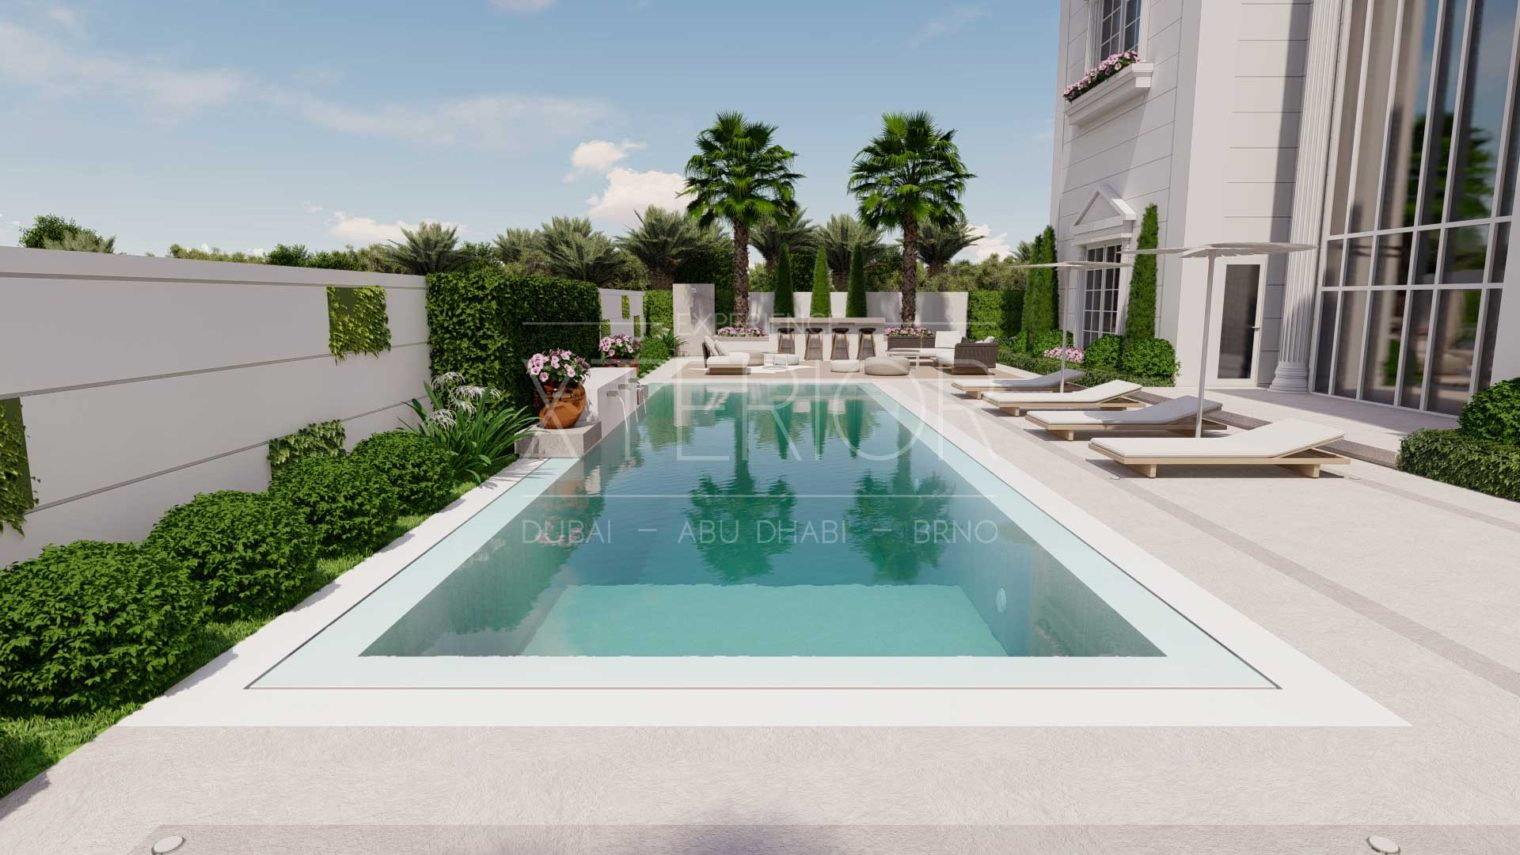 swimming pool design with sundeck area